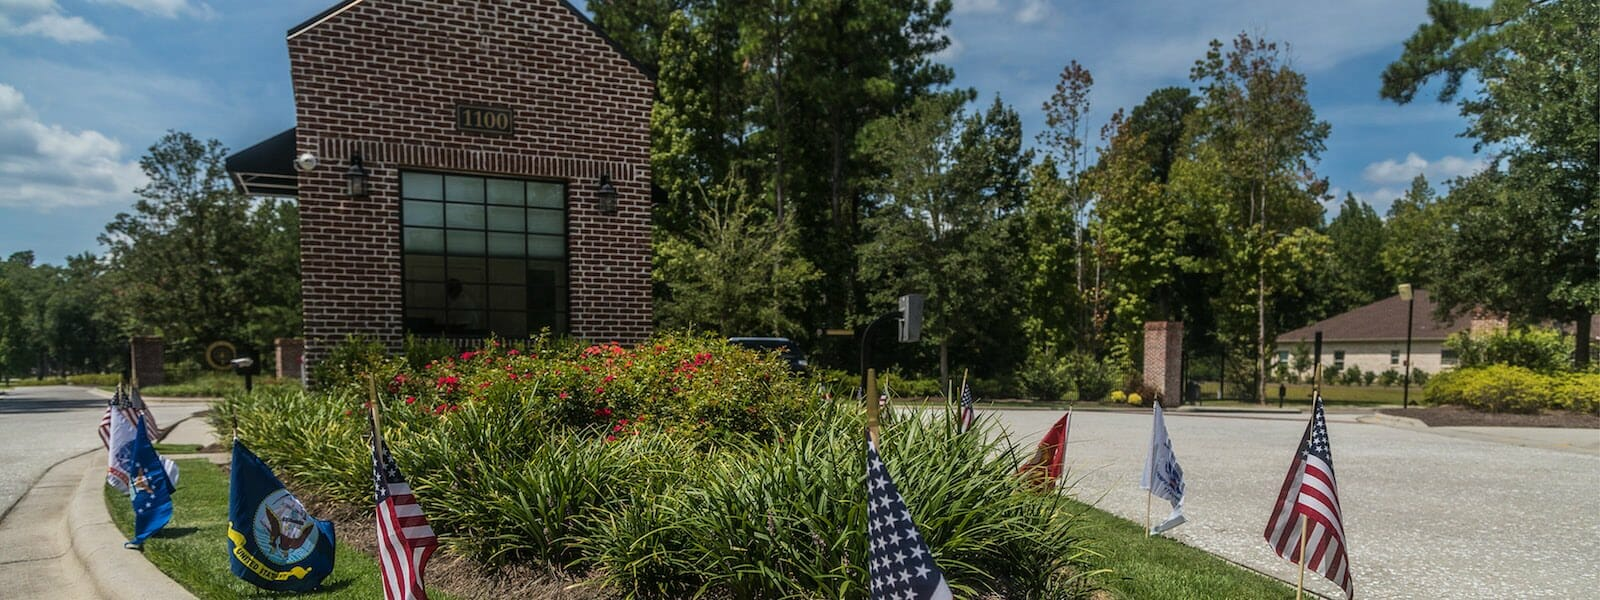 Coastal River Community near Wilmington NC | River Bluffs | Gated Active Adult